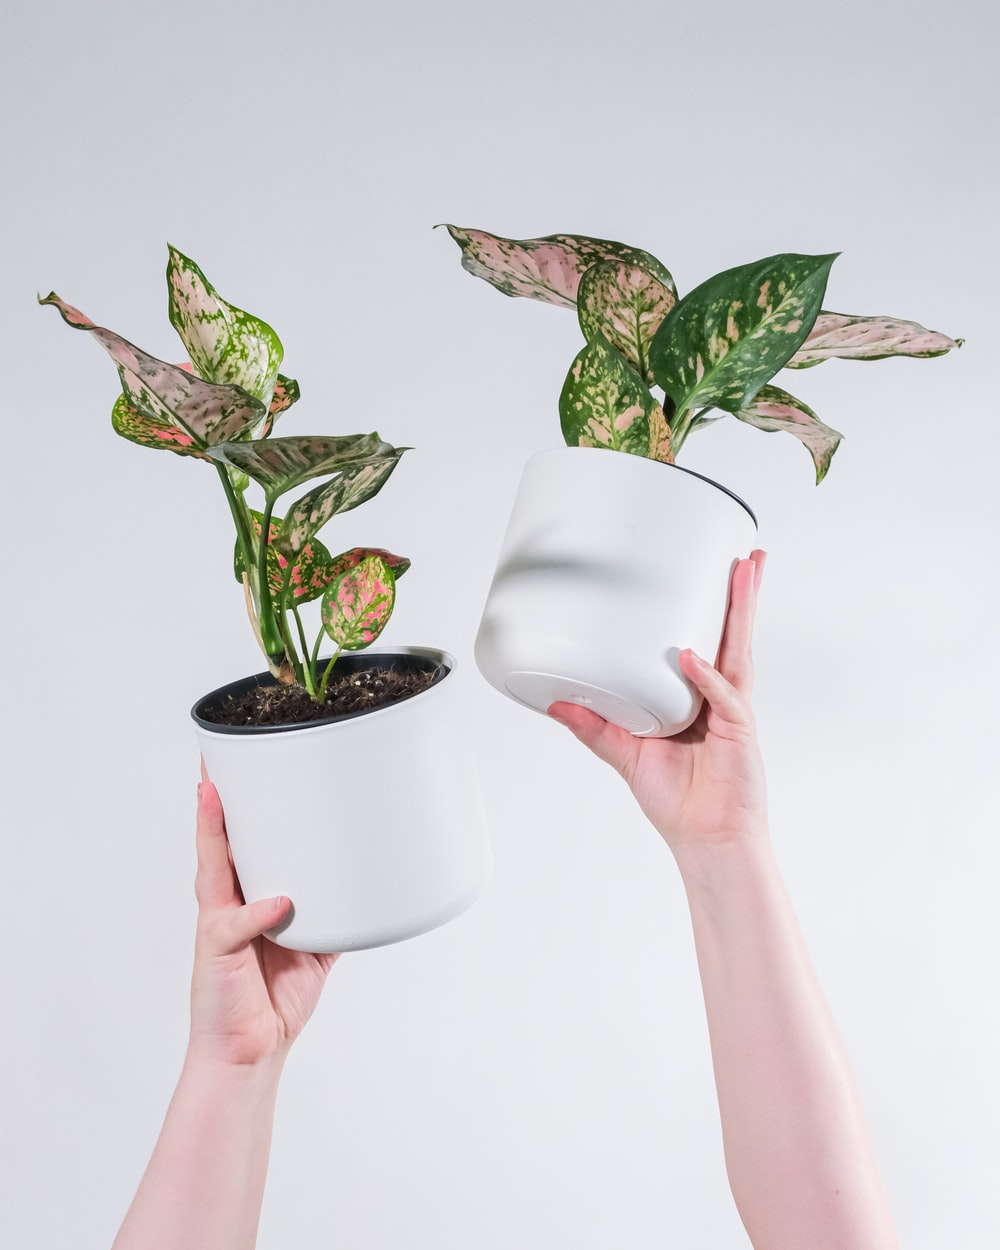 person holding white ceramic pot with green plant